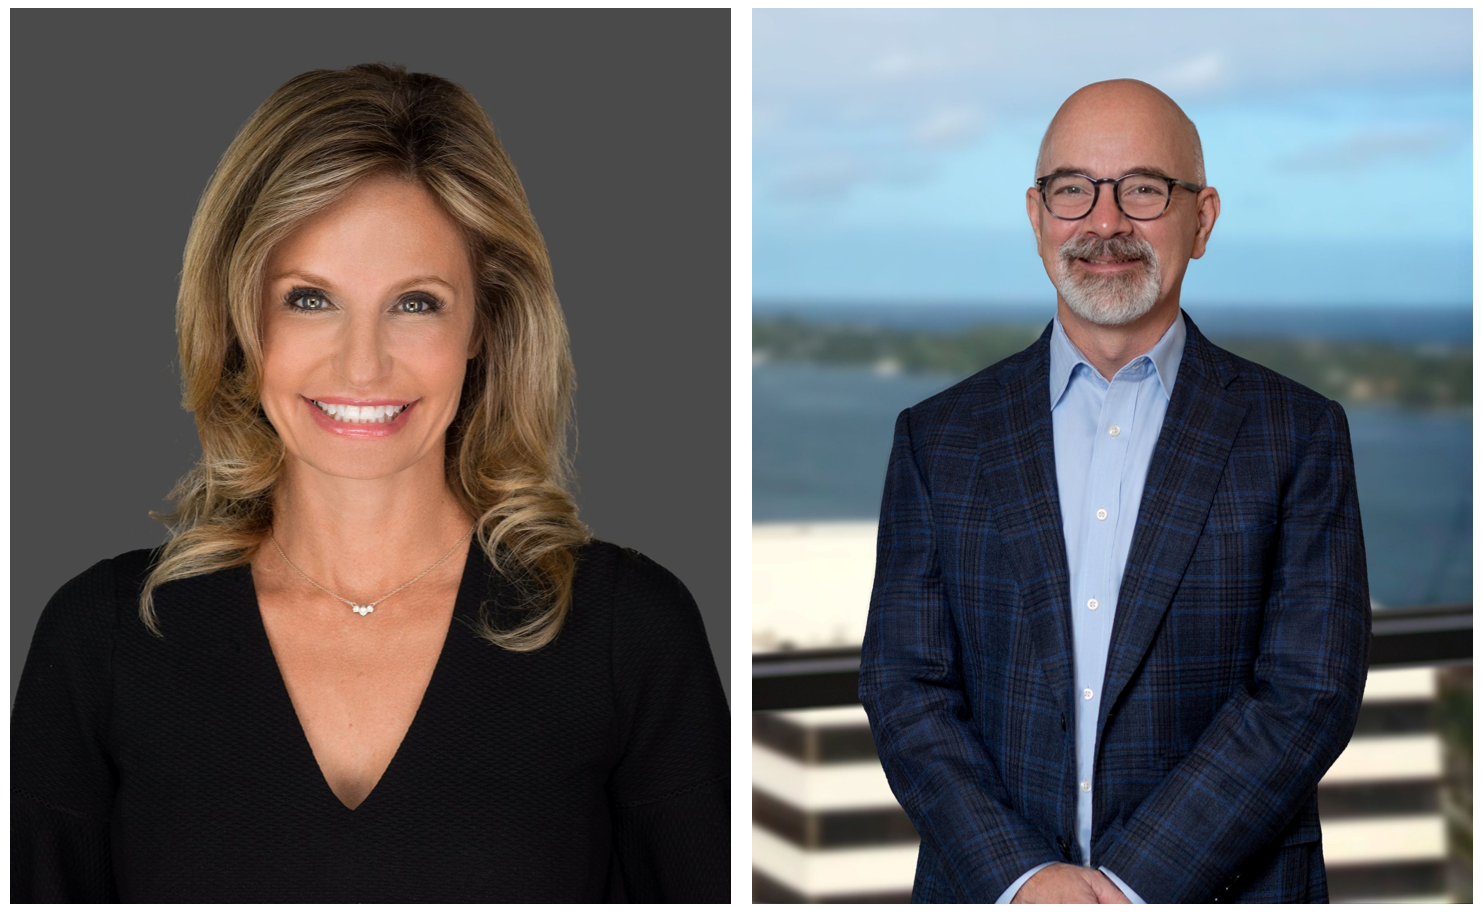 Feeding South Florida Appoints Steve Magowan and Julie Dodd to Board of Directors